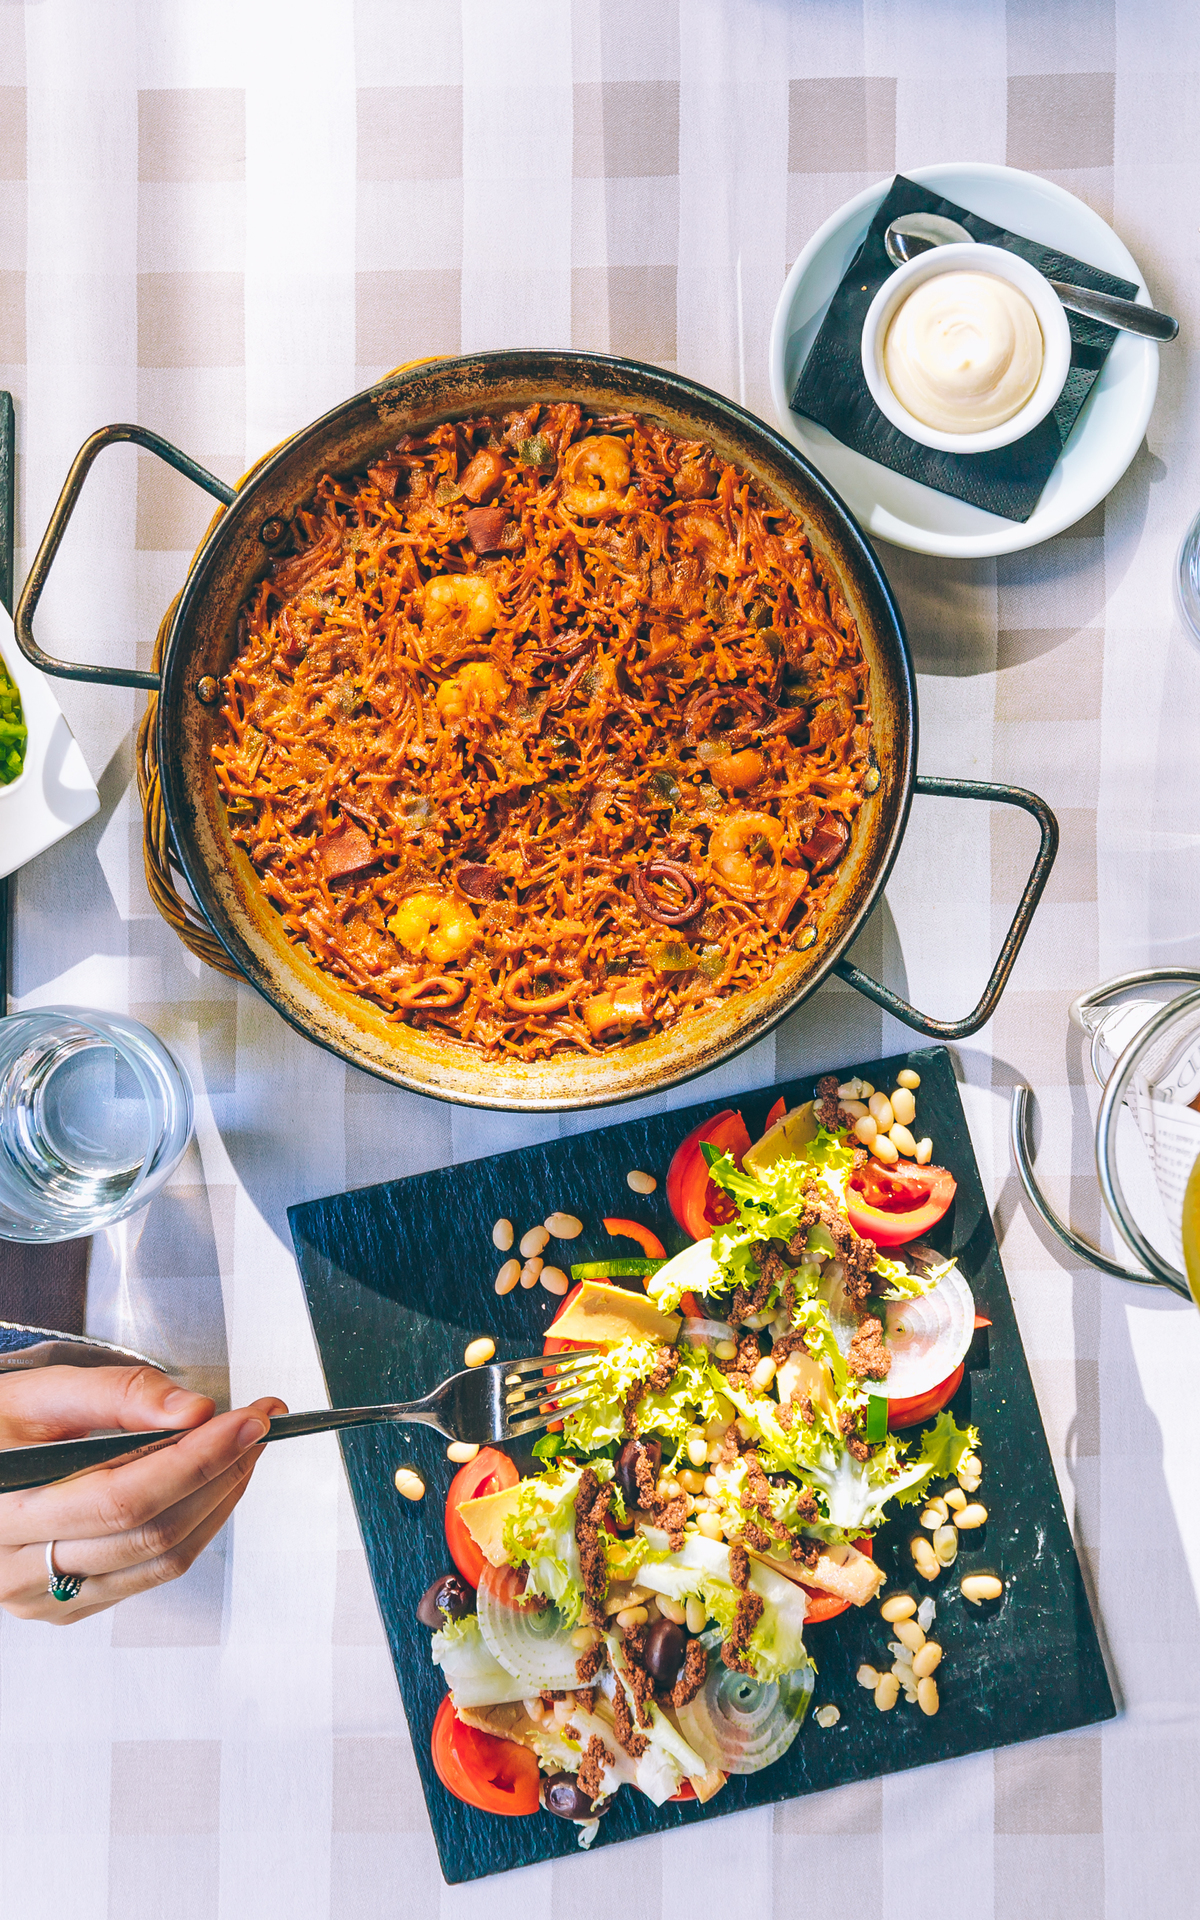 Table with paella and Mediterranean salad